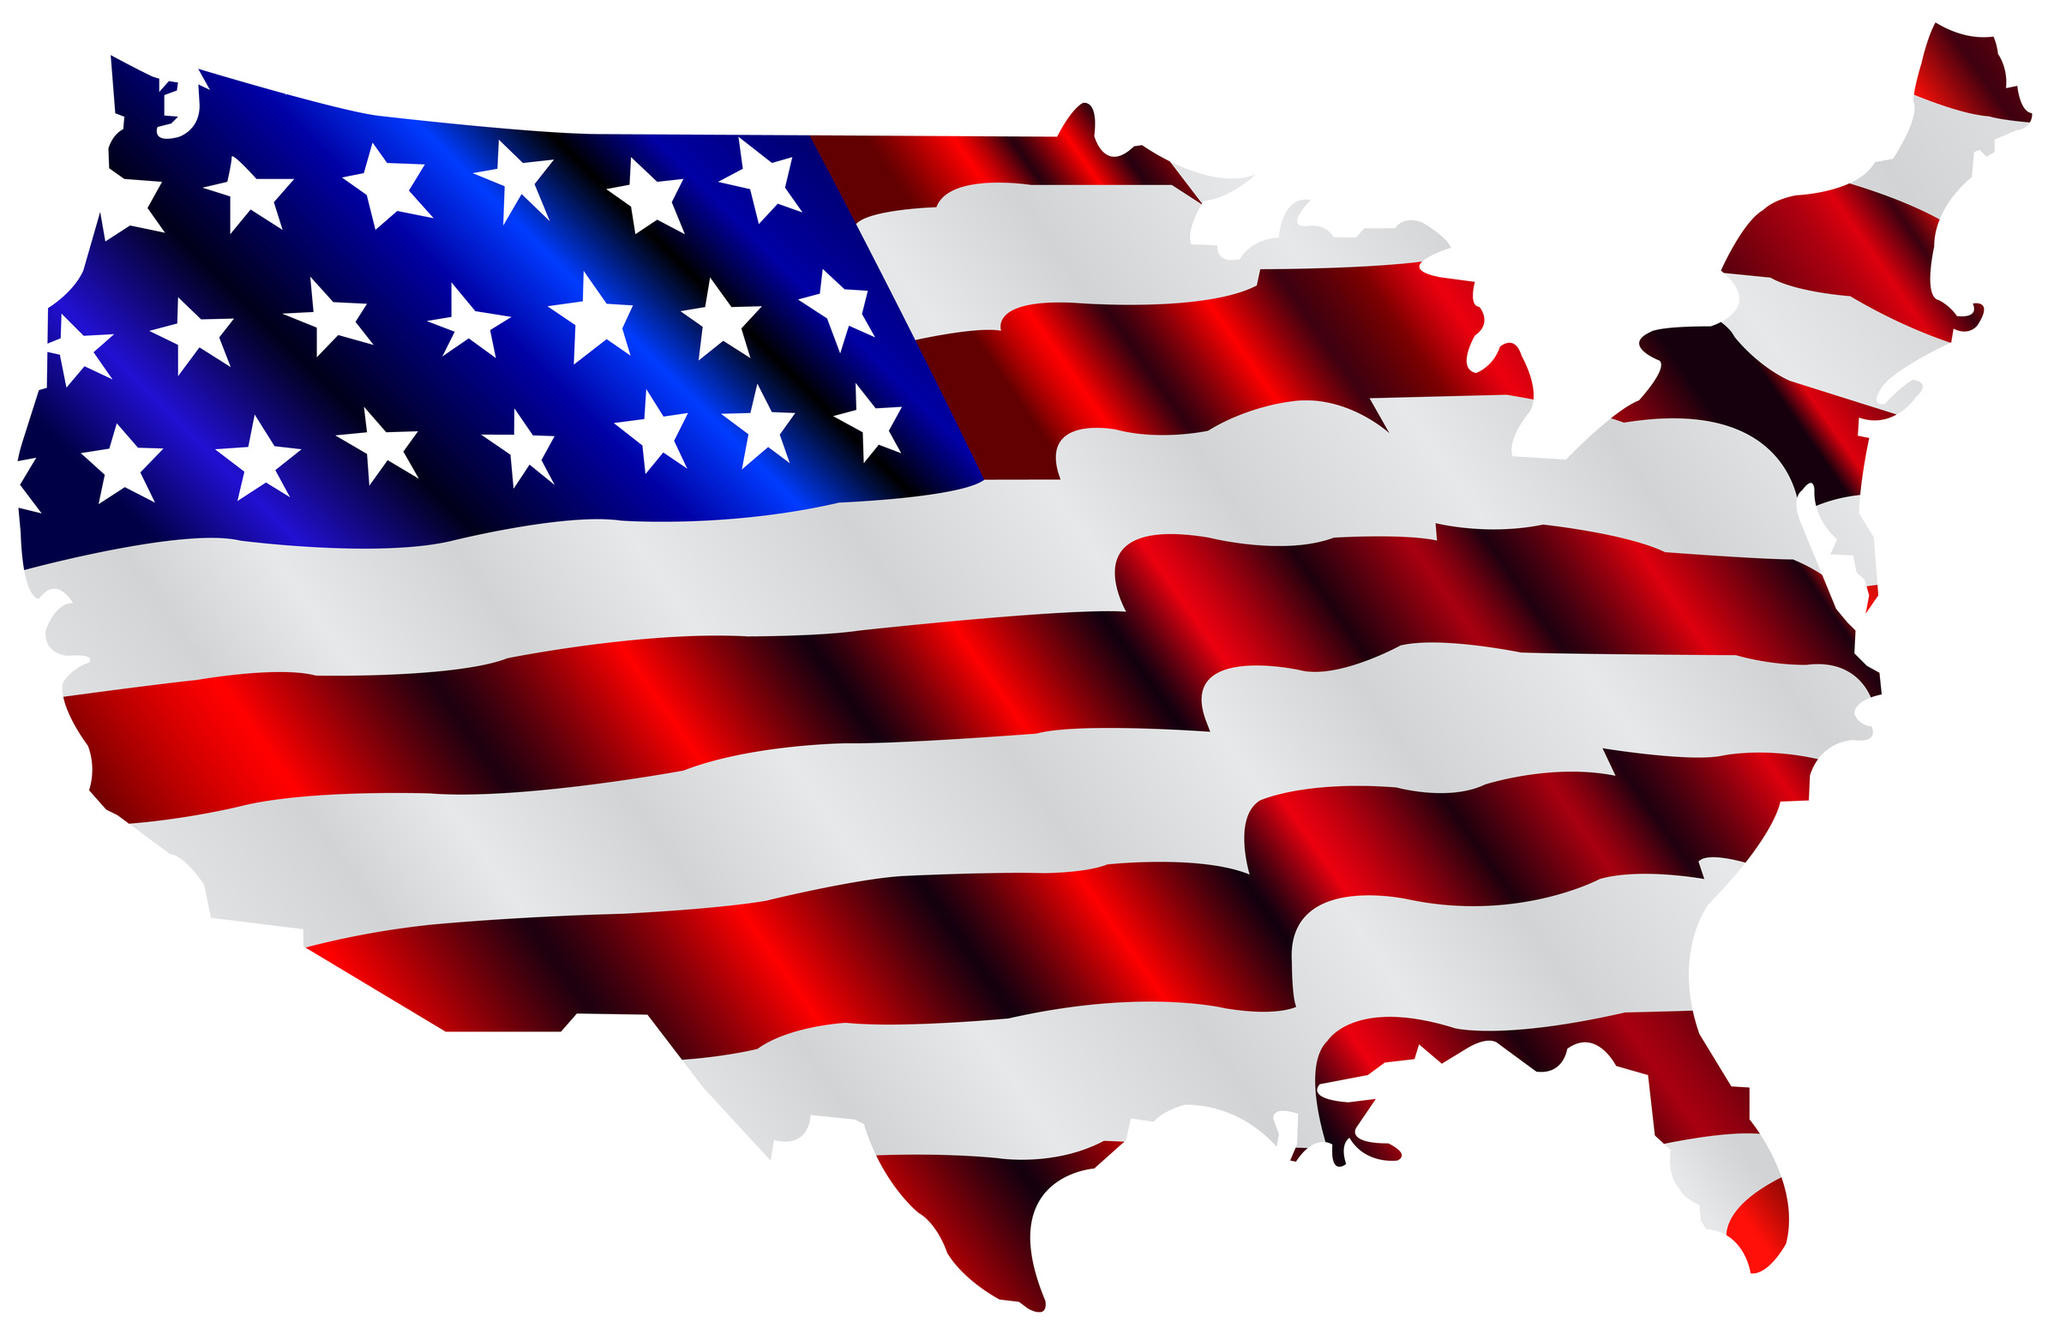 586271-united-states-flag-background-2048x1328-hd-1080p